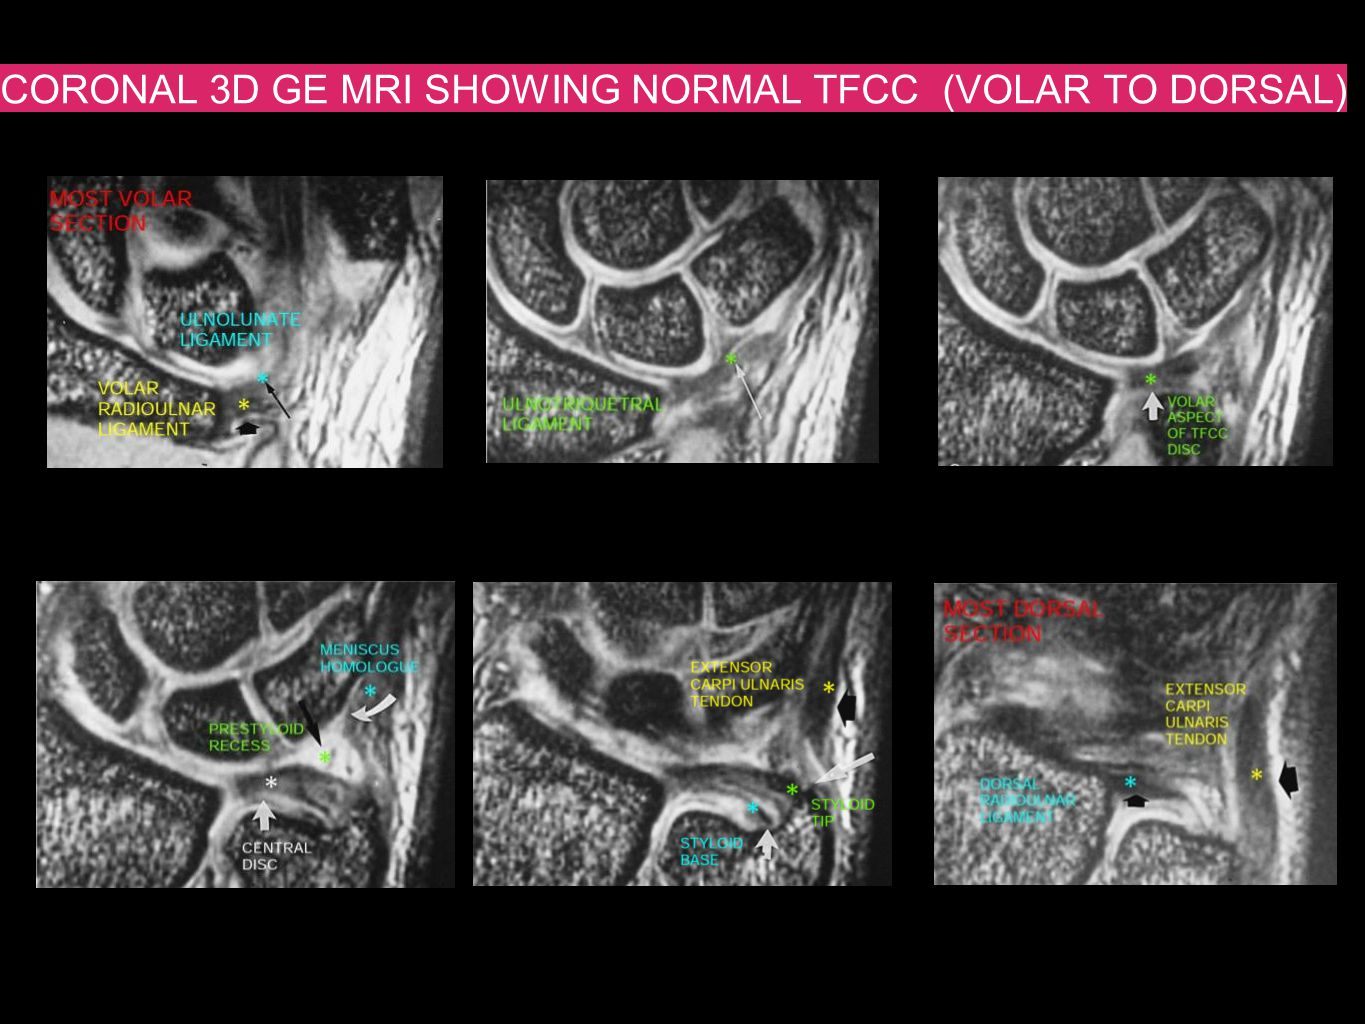 CORONAL 3D GE MRI SHOWING NORMAL TFCC (VOLAR TO DORSAL)